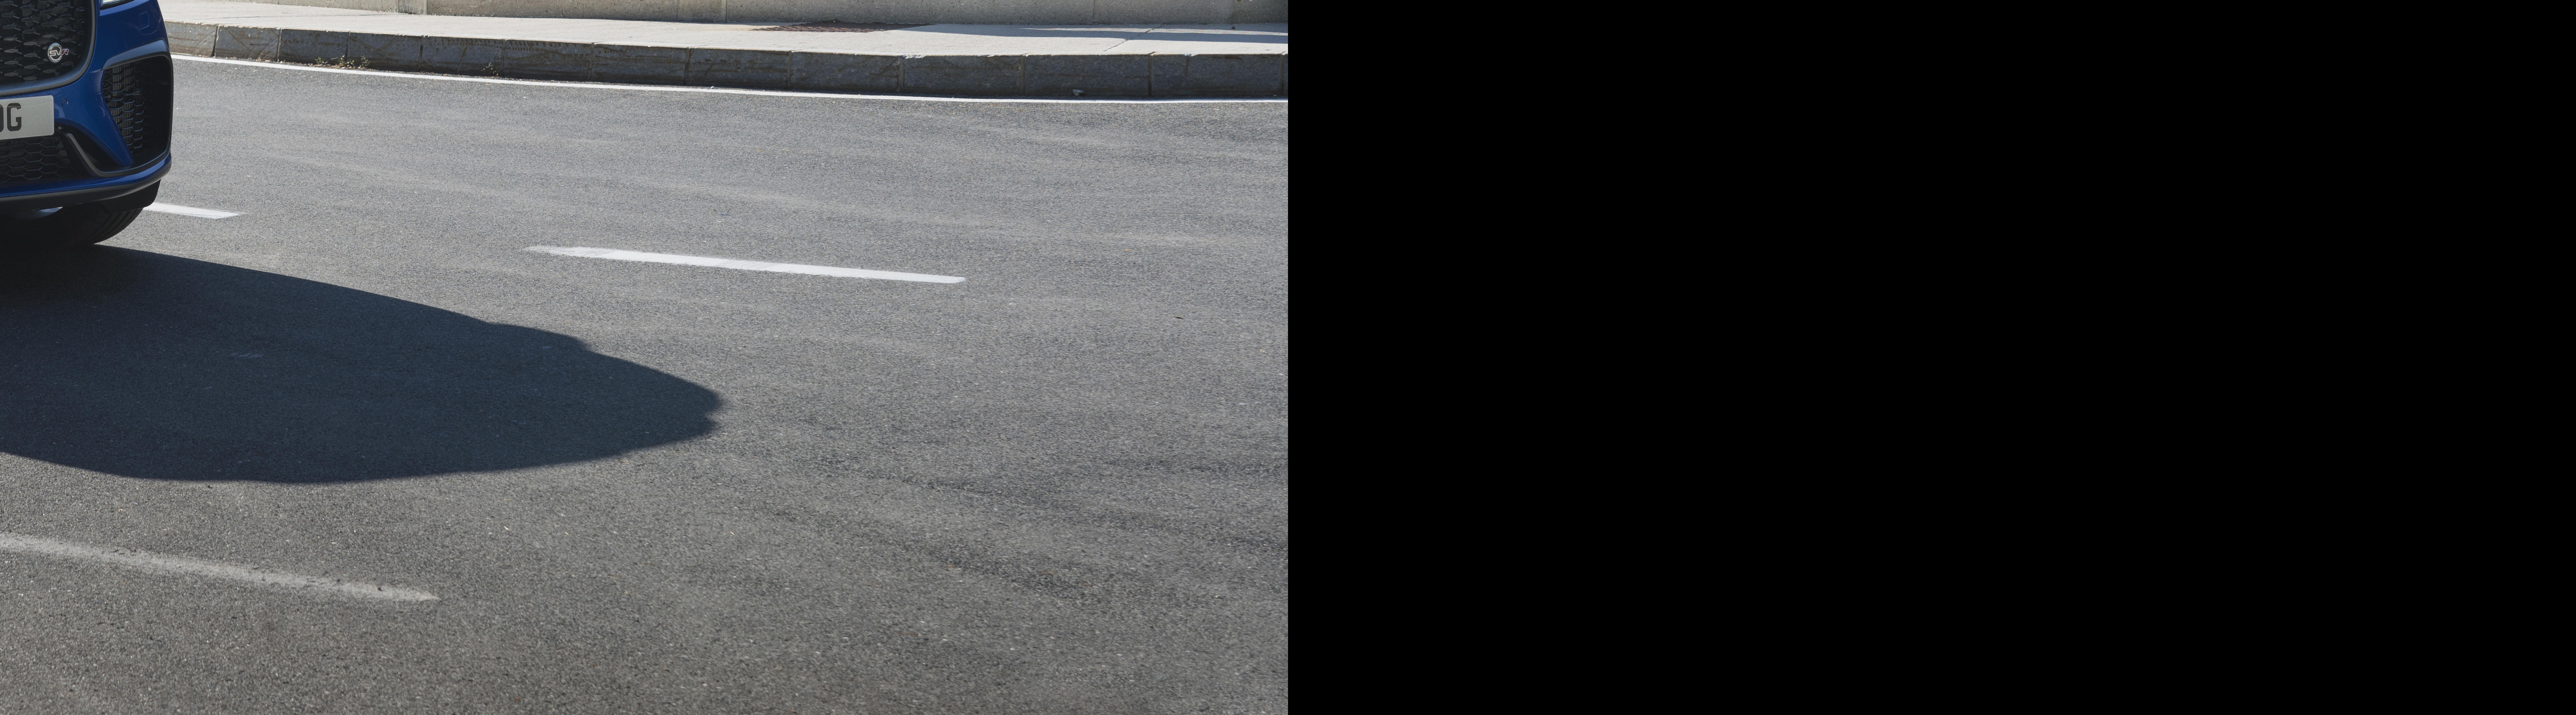 New Jaguar F Pace Svr Performance Suv Is Faster More Luxurious And More Refined Than Ever Jlr Corporate Website